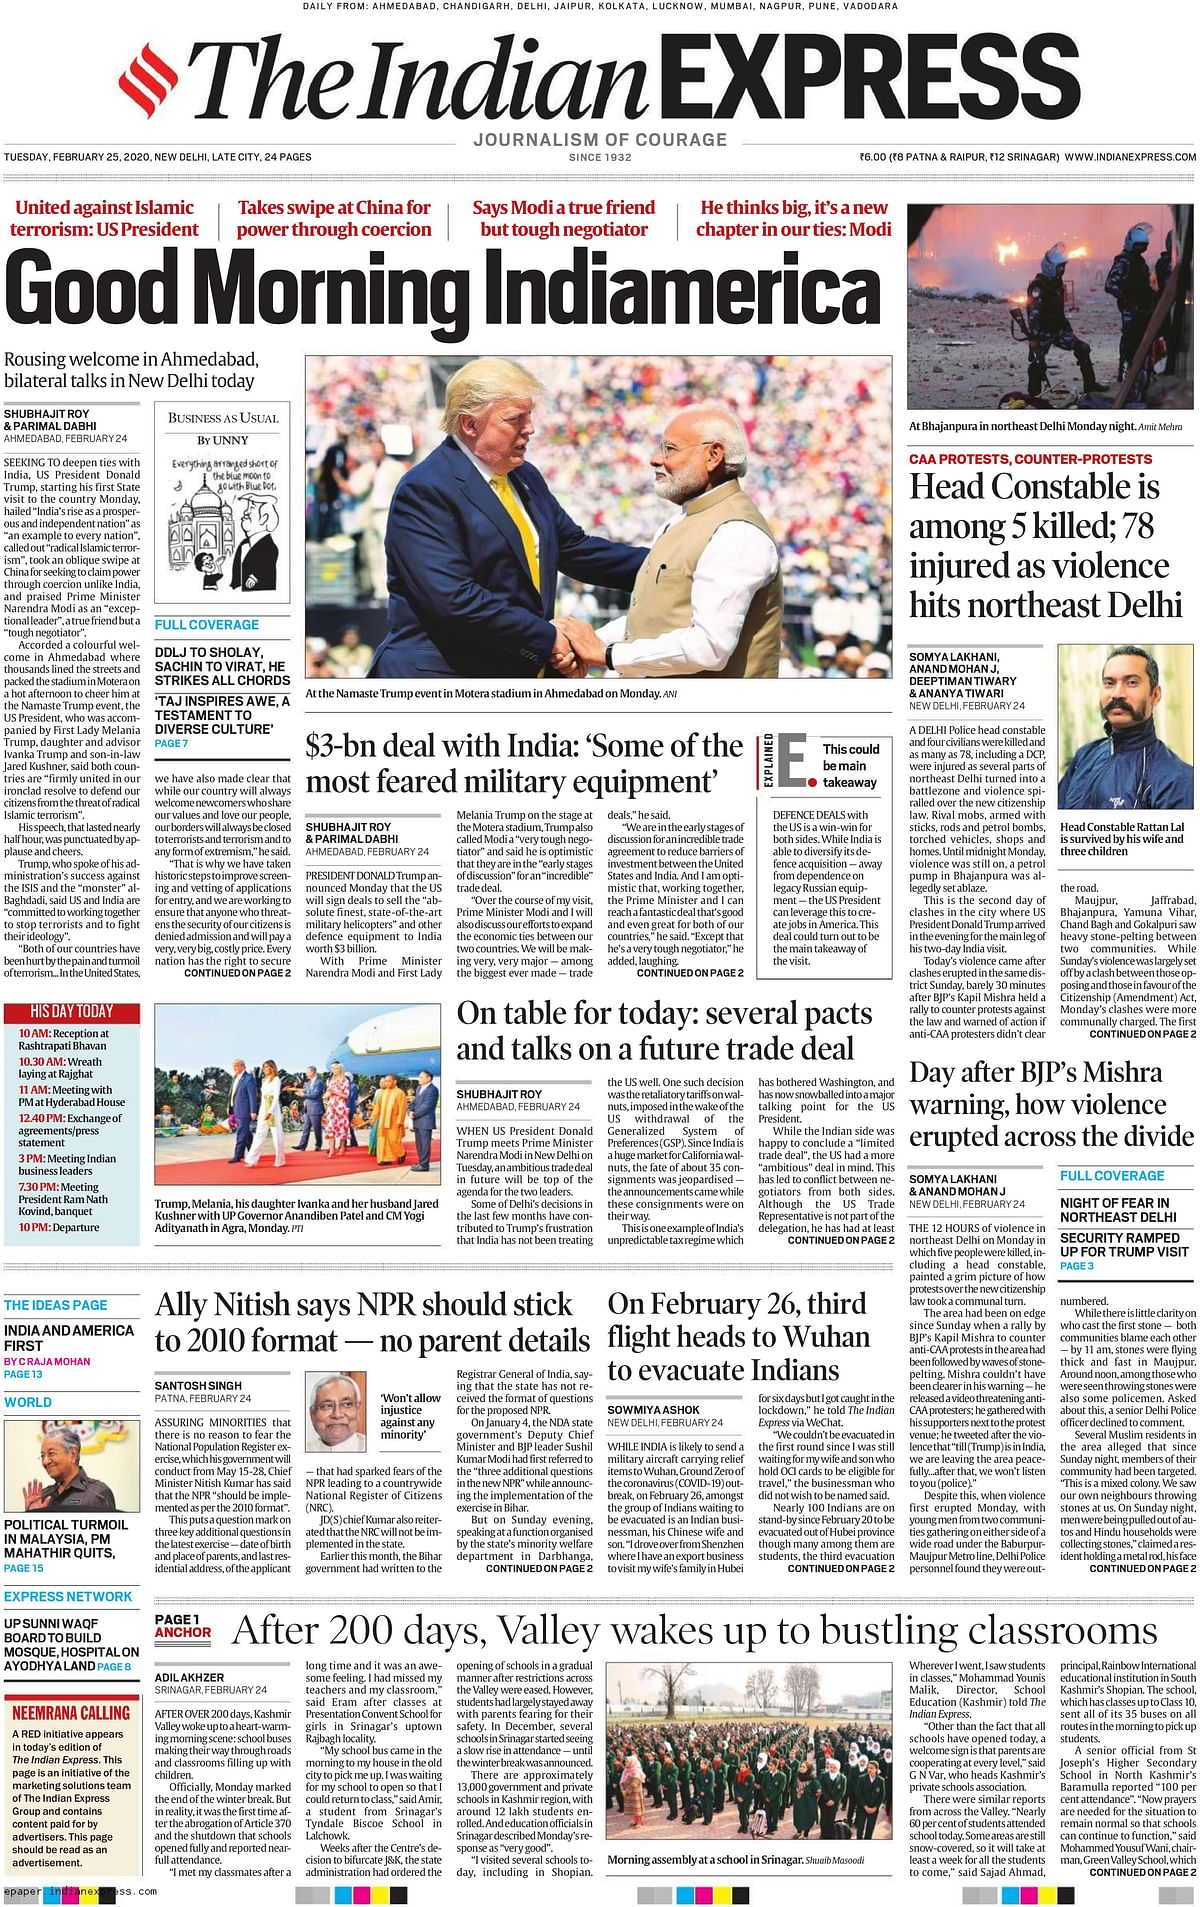 'Good Morning Indiamerica': How major English newspapers in India and Pak covered Trump's visit